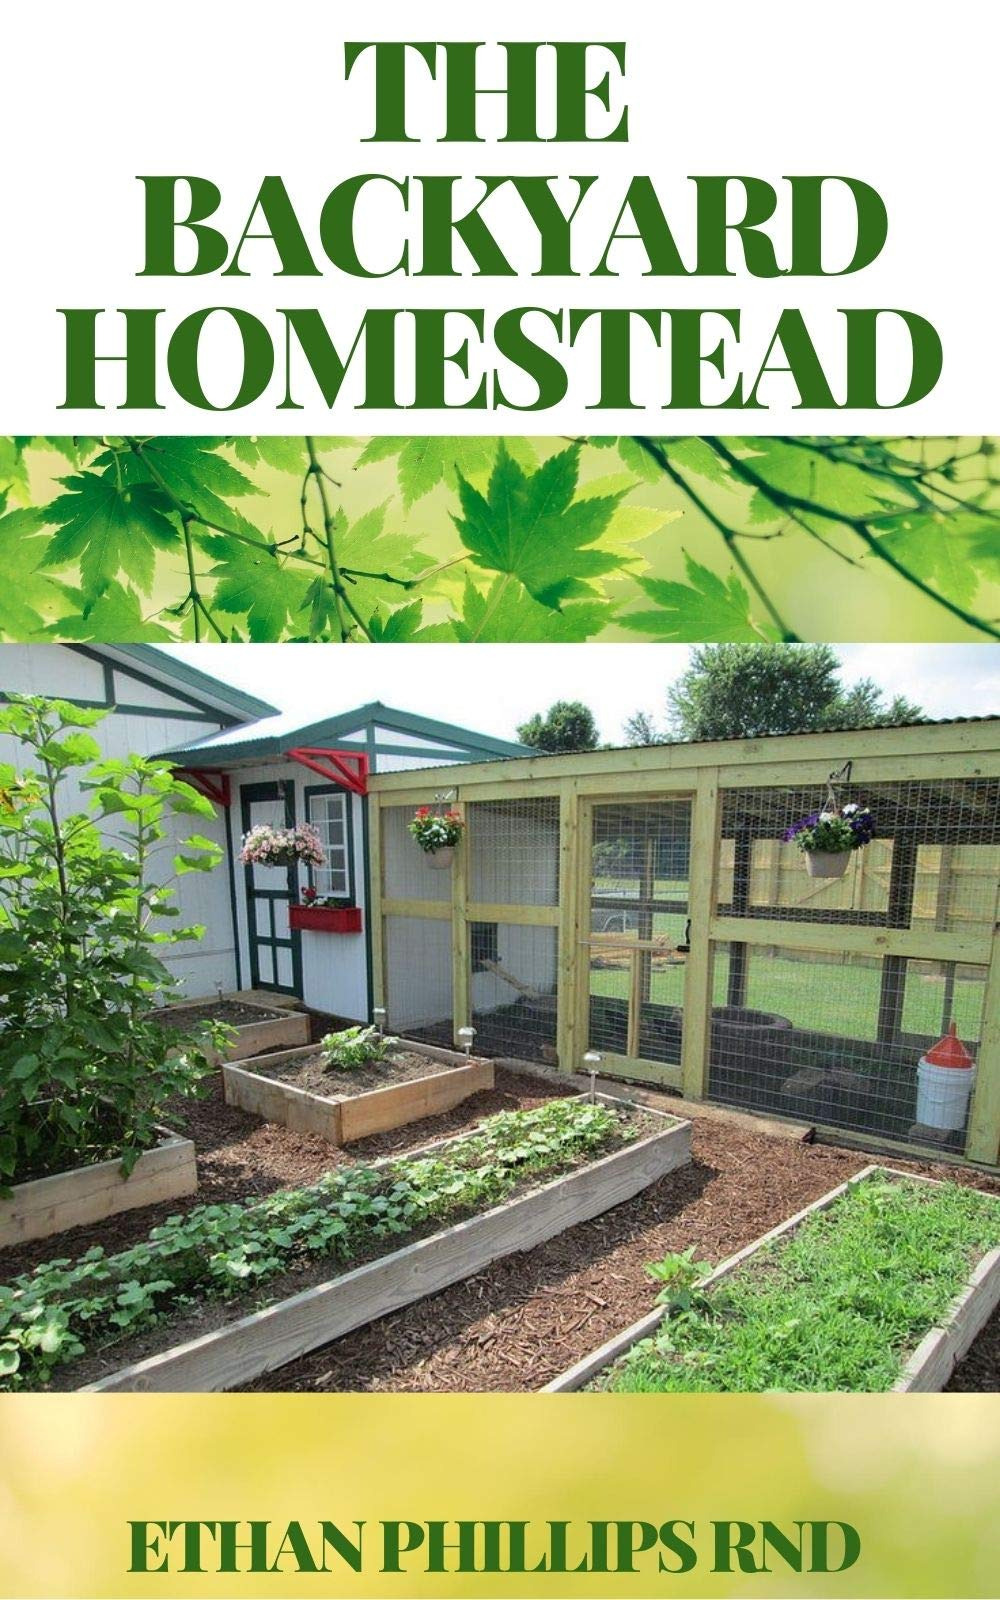 THE BACKYARD HOMESTEAD: A Step By Step Guide to Self-Sufficiency (Creative Homeowner) Learn How to Grow Fruits, Vegetables, Nuts & Berries, Raise Chickens, Goats, & Bees, and Make Beer, Wine, & Cide